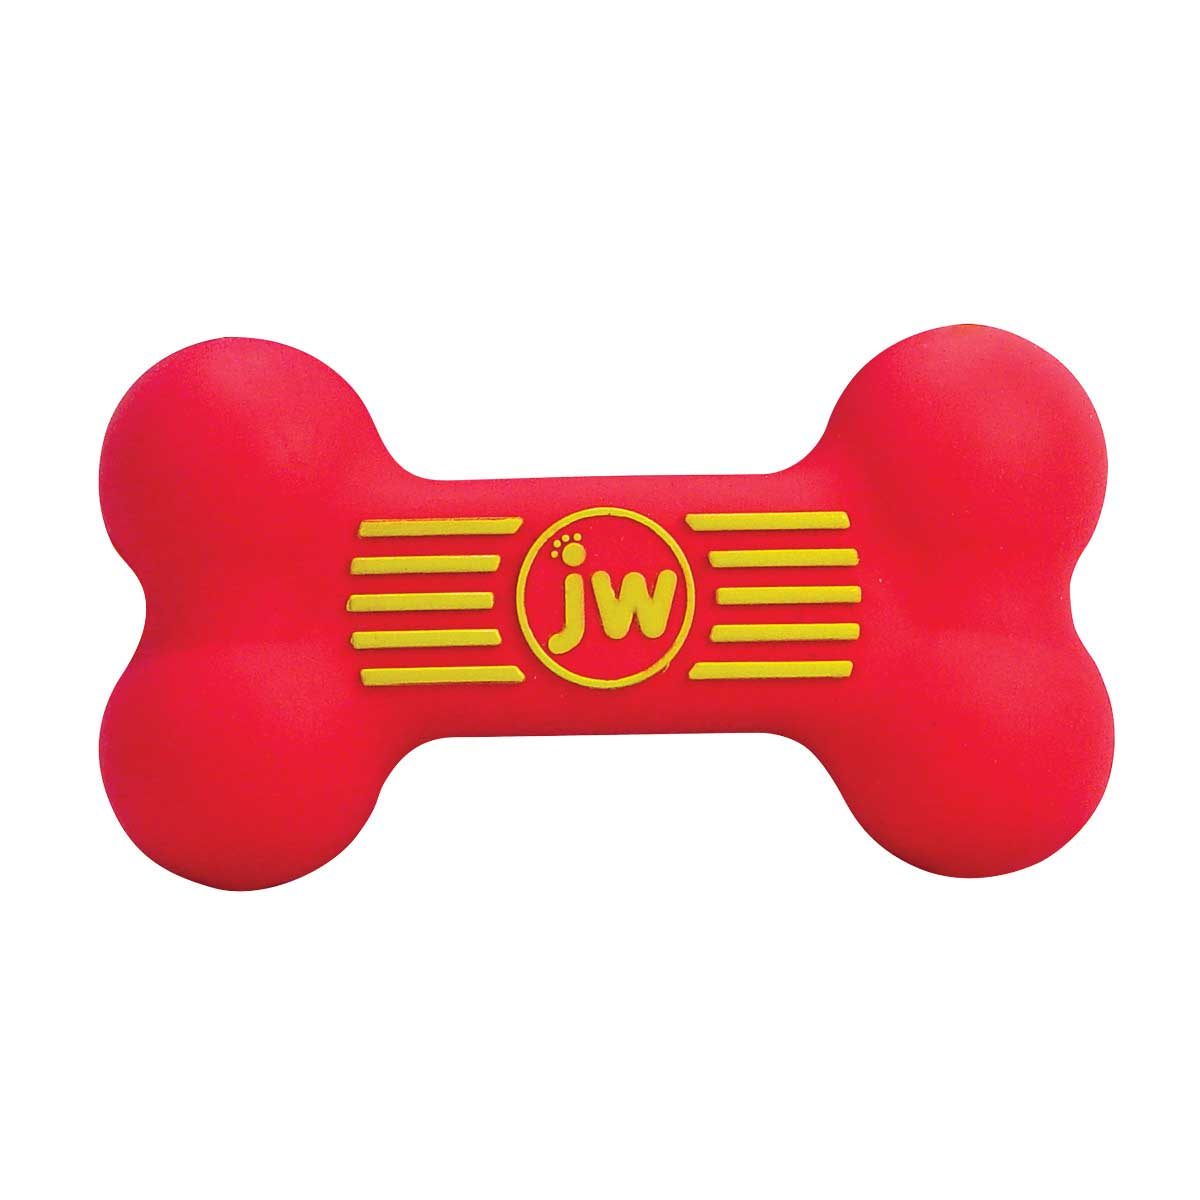 JW Isqueak Small Rubber Bone for Dogs